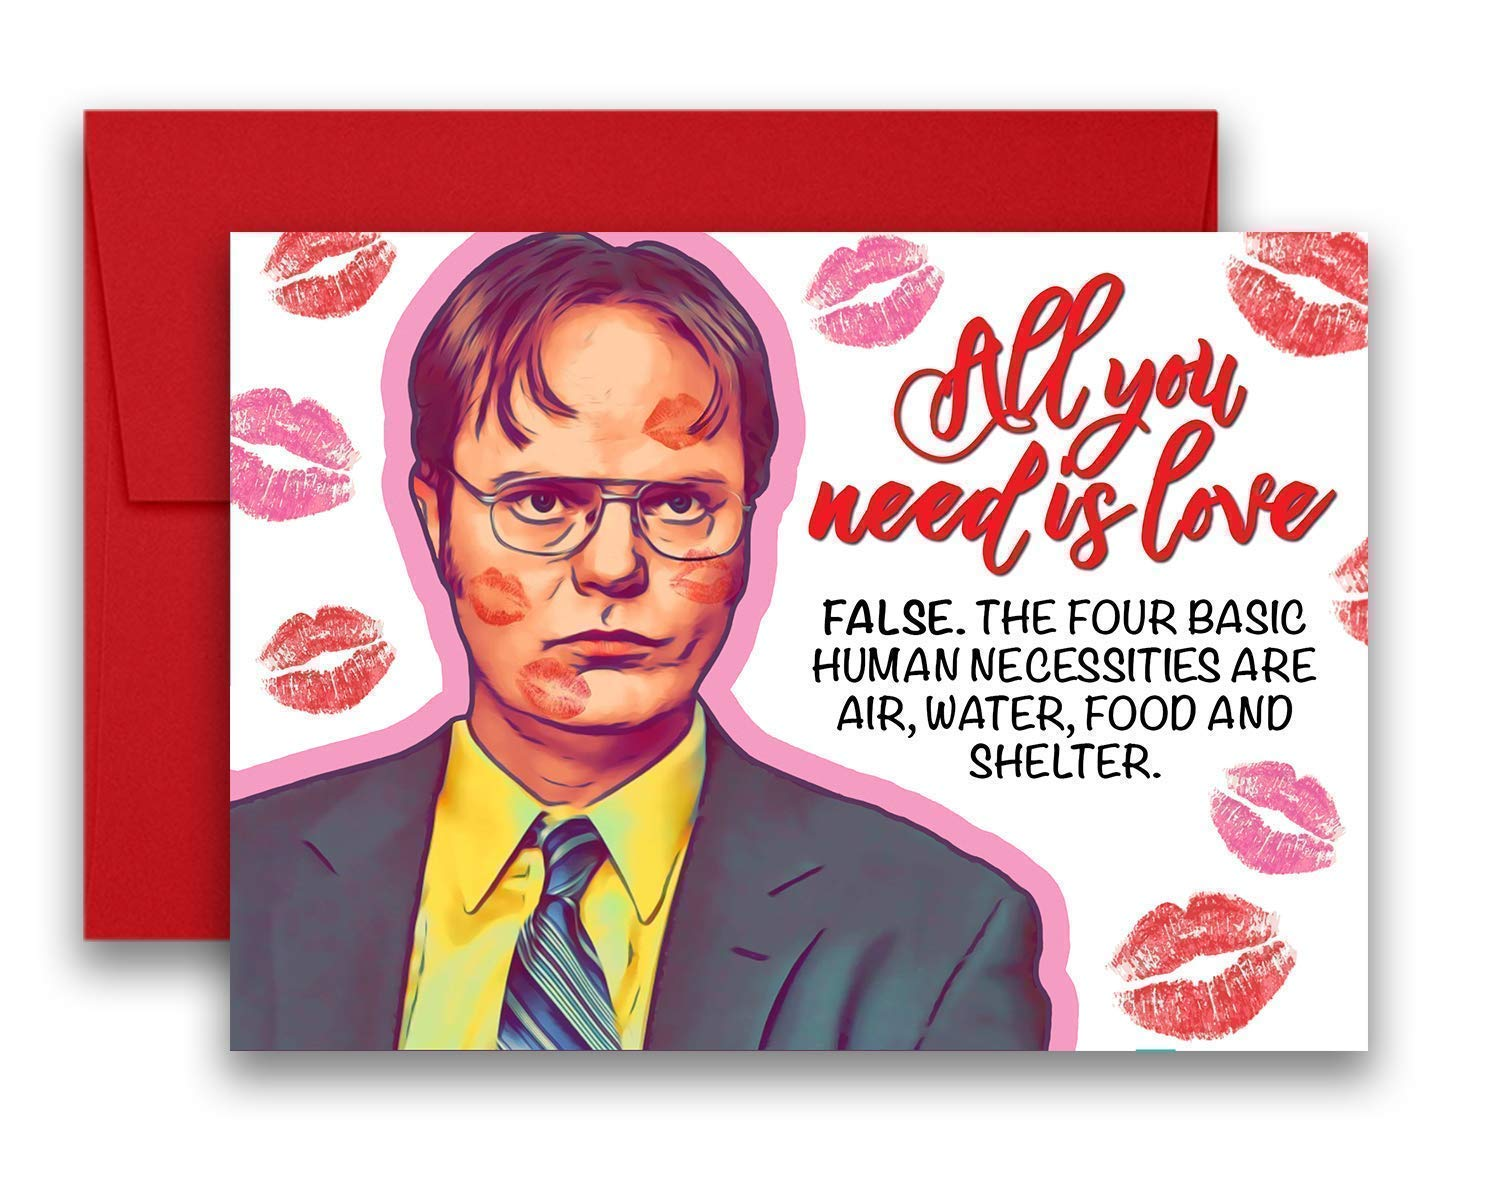 The Office Love Valentine's Day Anniversary Dwight Schrute All You Need is Love Greeting Card 5x7 inches w/Envelope